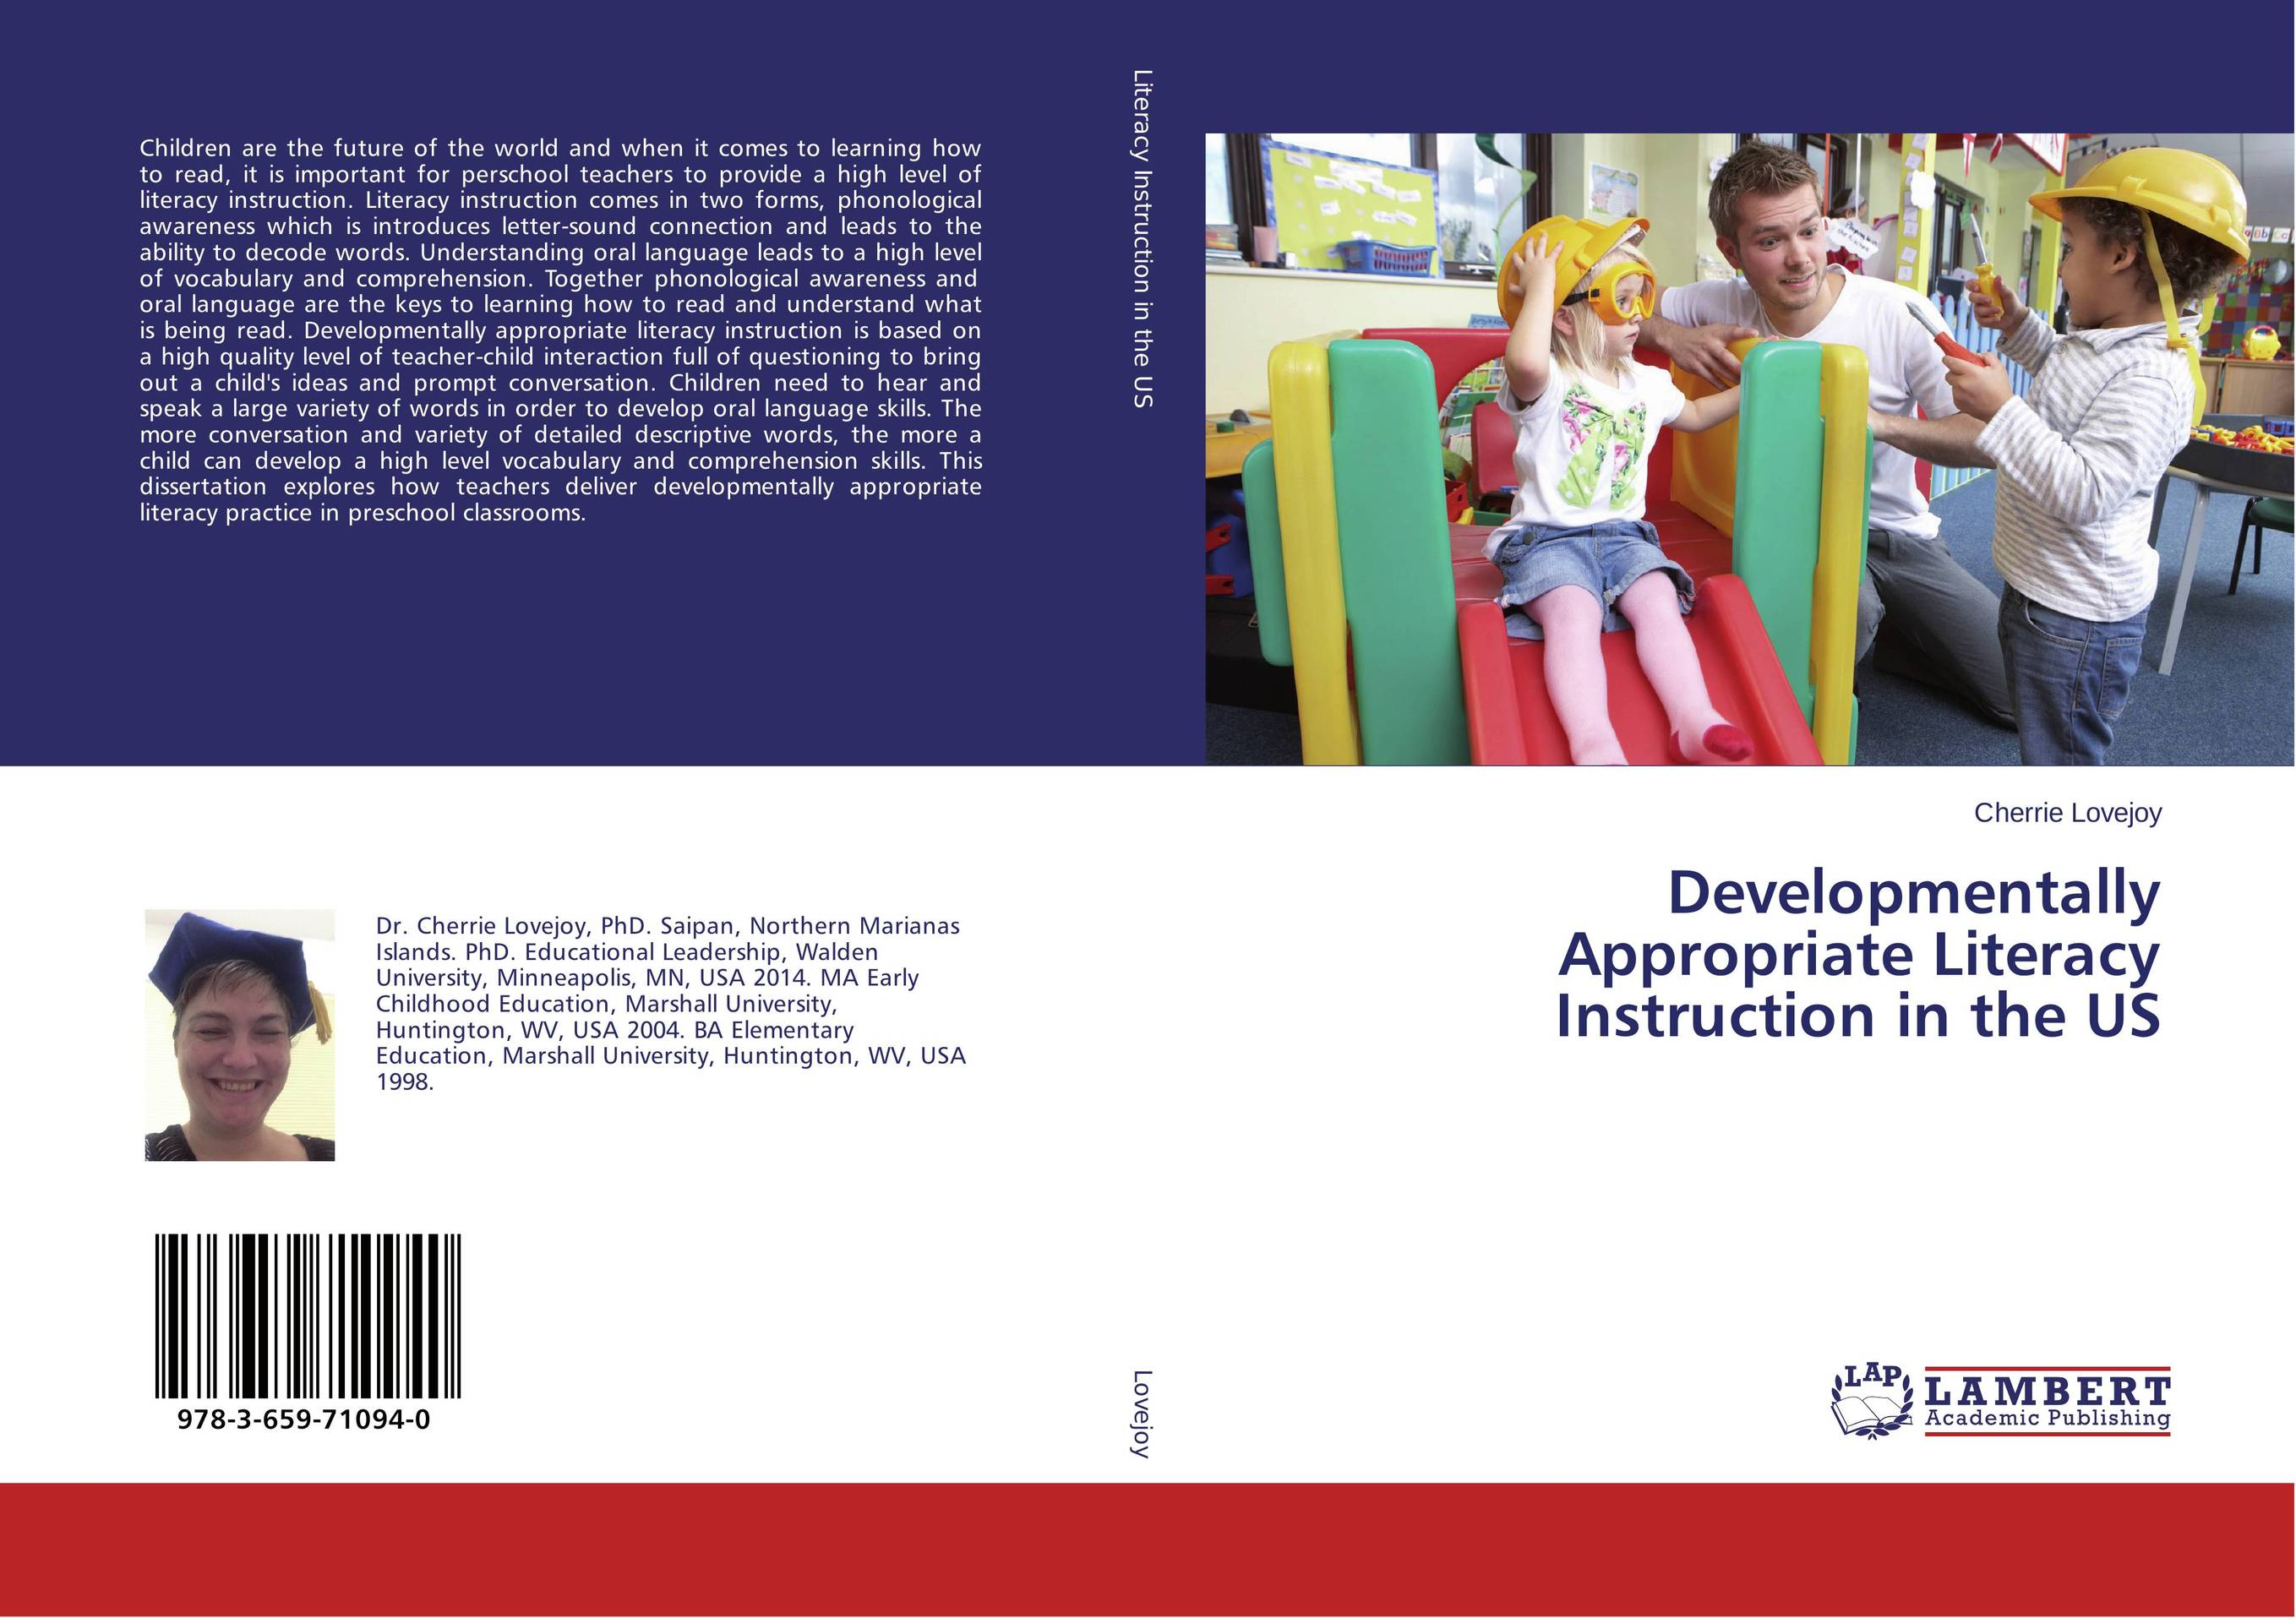 Developmentally Appropriate Literacy Instruction in the US